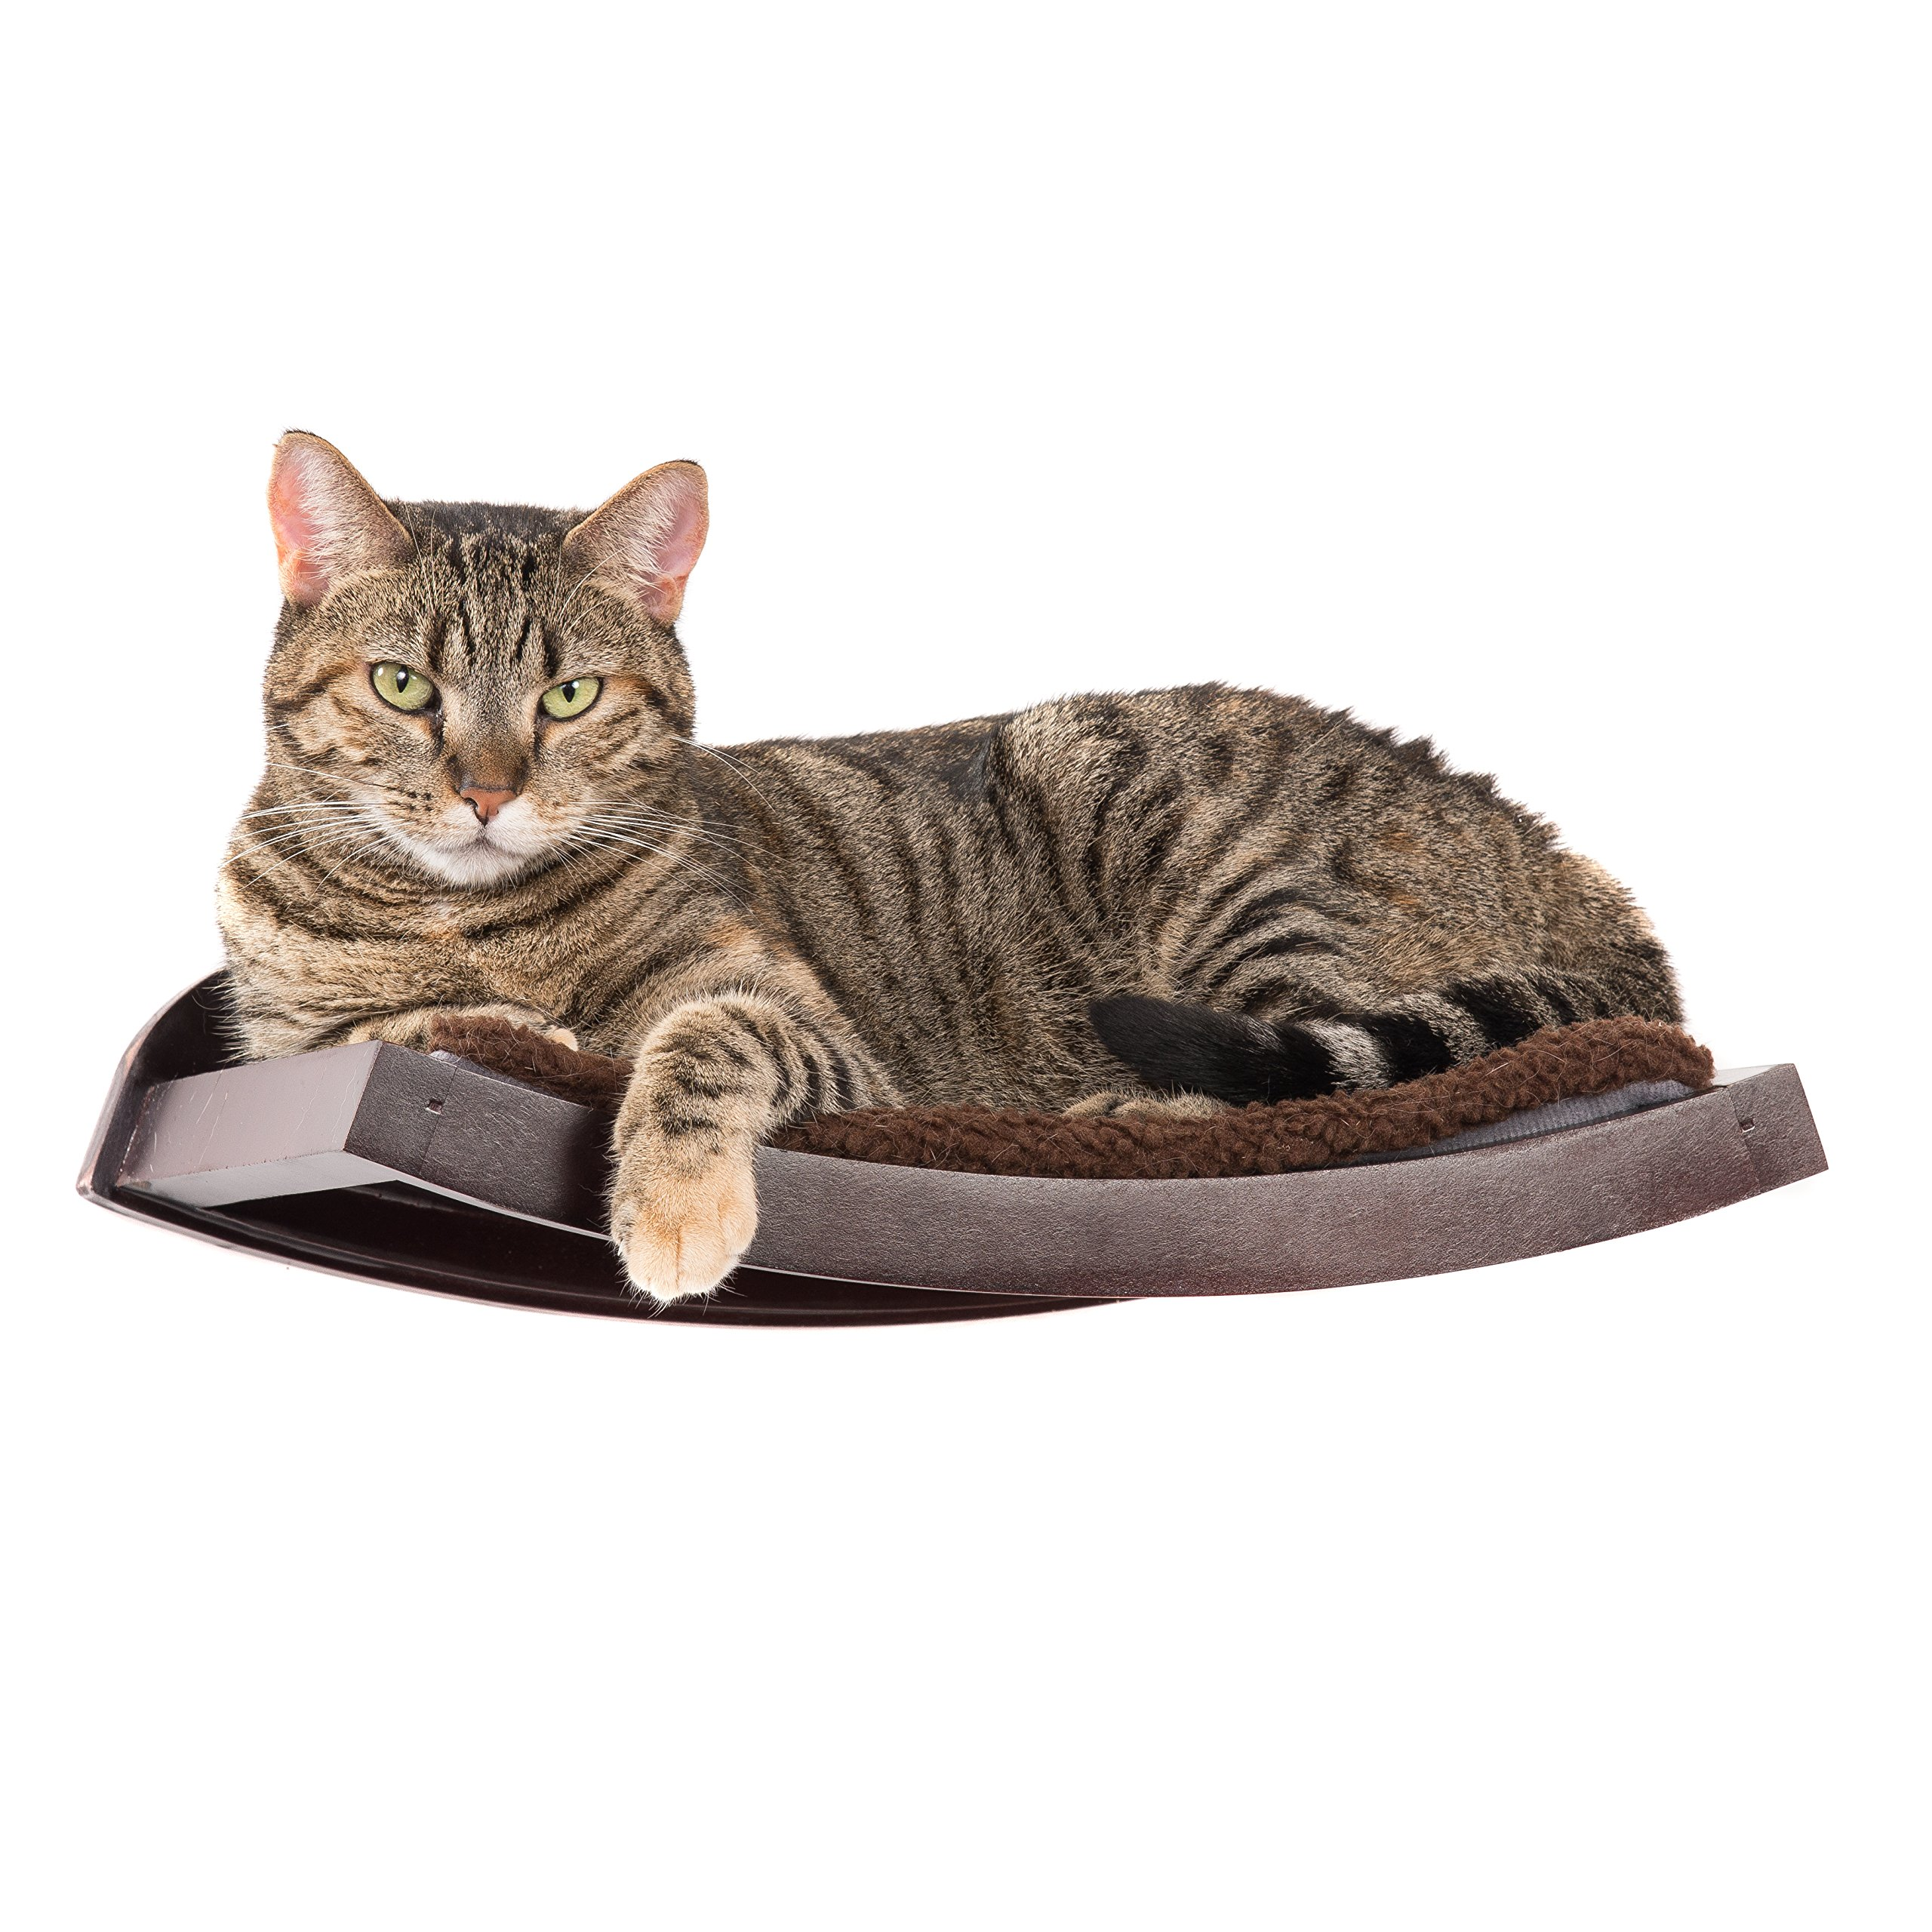 Art of Paws Cat Shelf | Cat Perch Cat Bed Curved Cat Hammock Design | Elegant Wood Wall-Mounted Cat Furniture | A Gift your cat will love! by Art of Paws (Image #1)